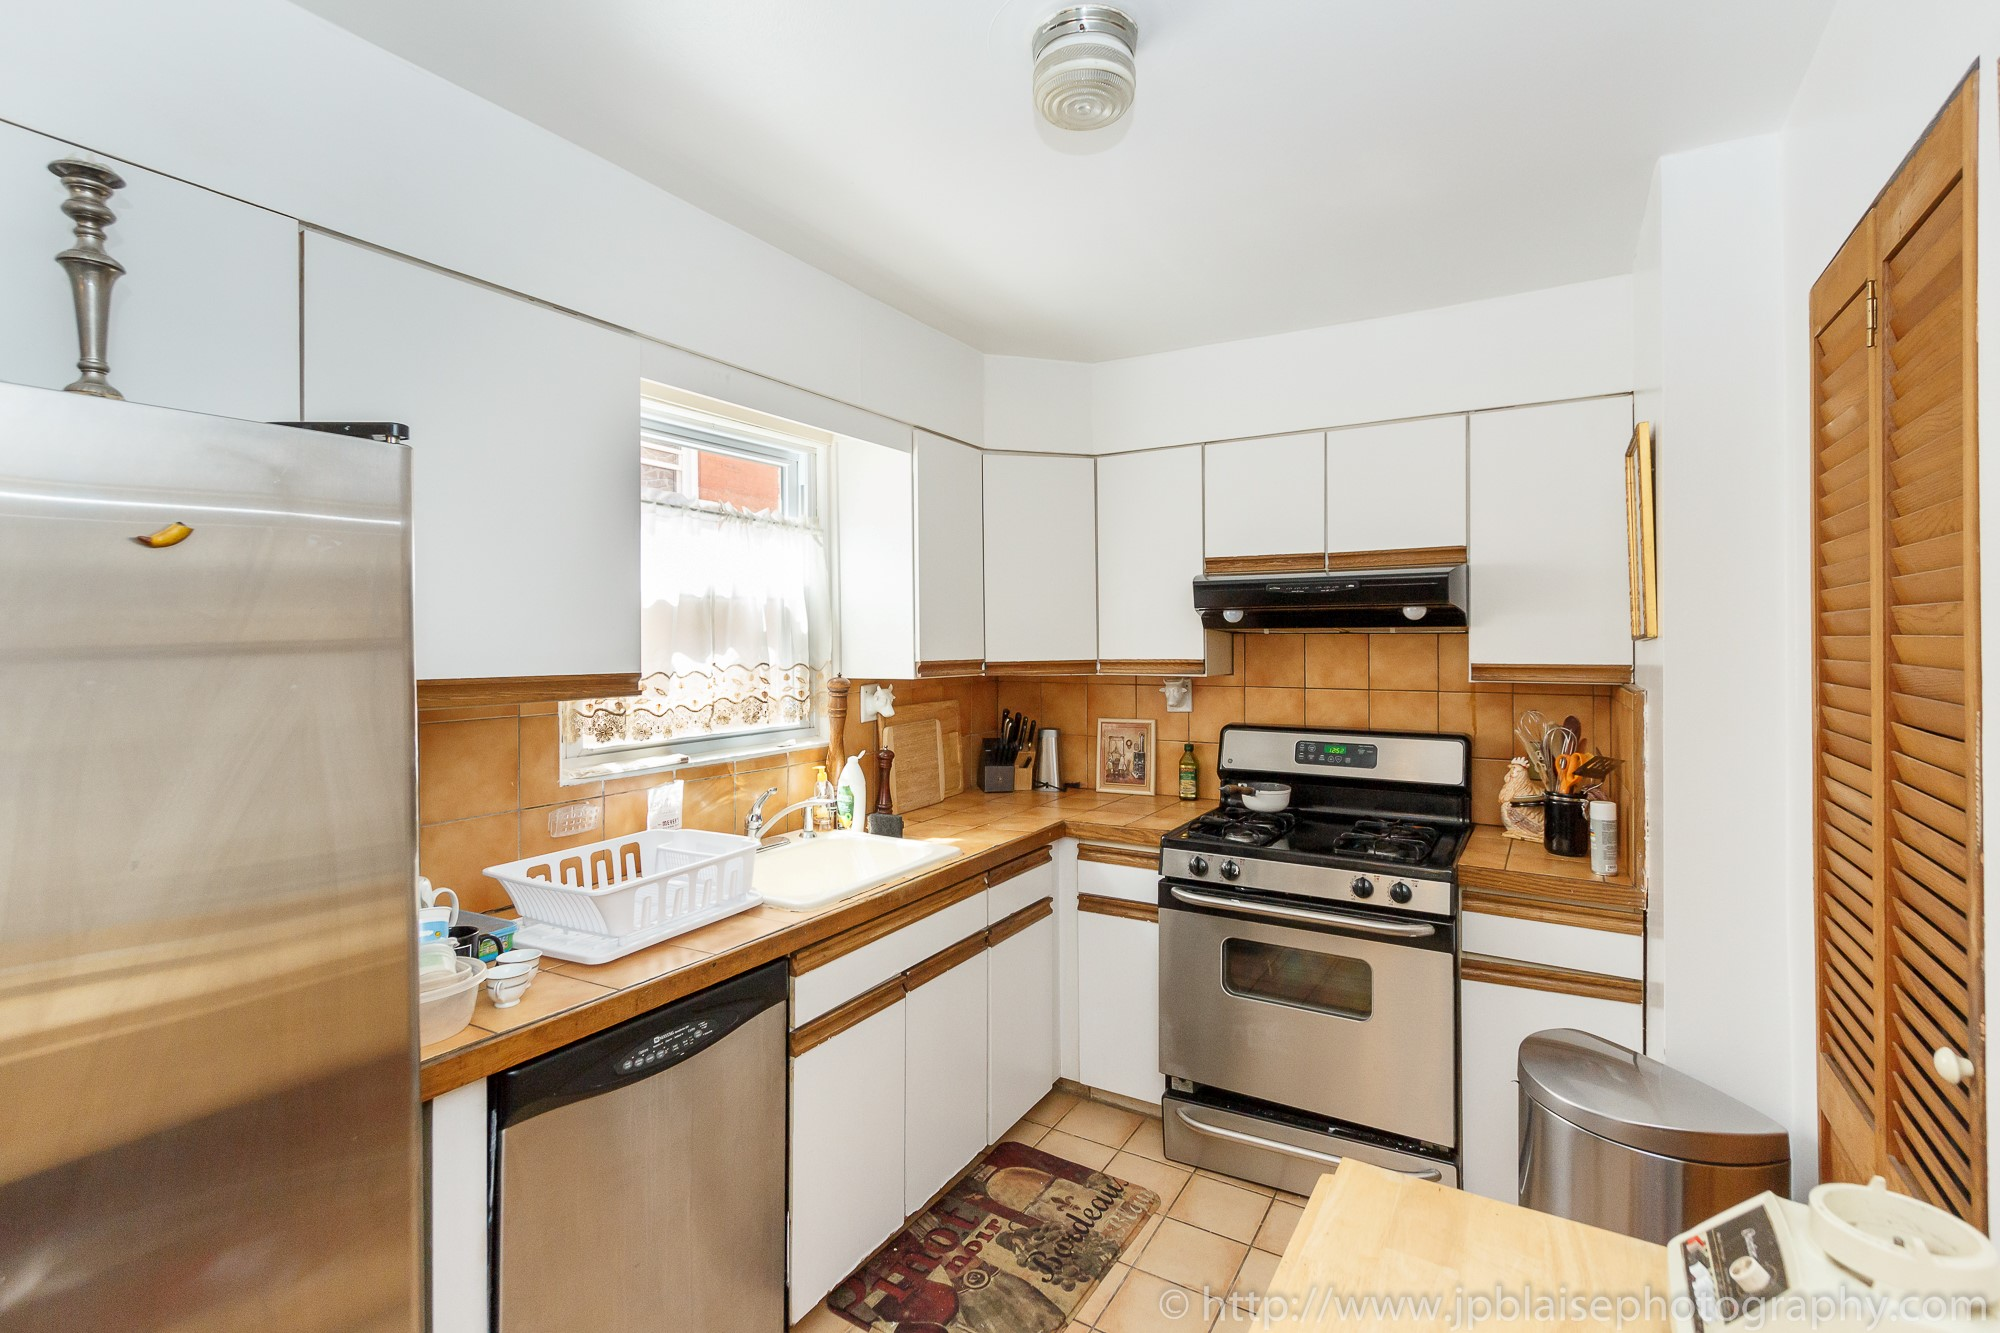 Interior Photography photosession two bedroom apartment in Sunnyside queens kitchen